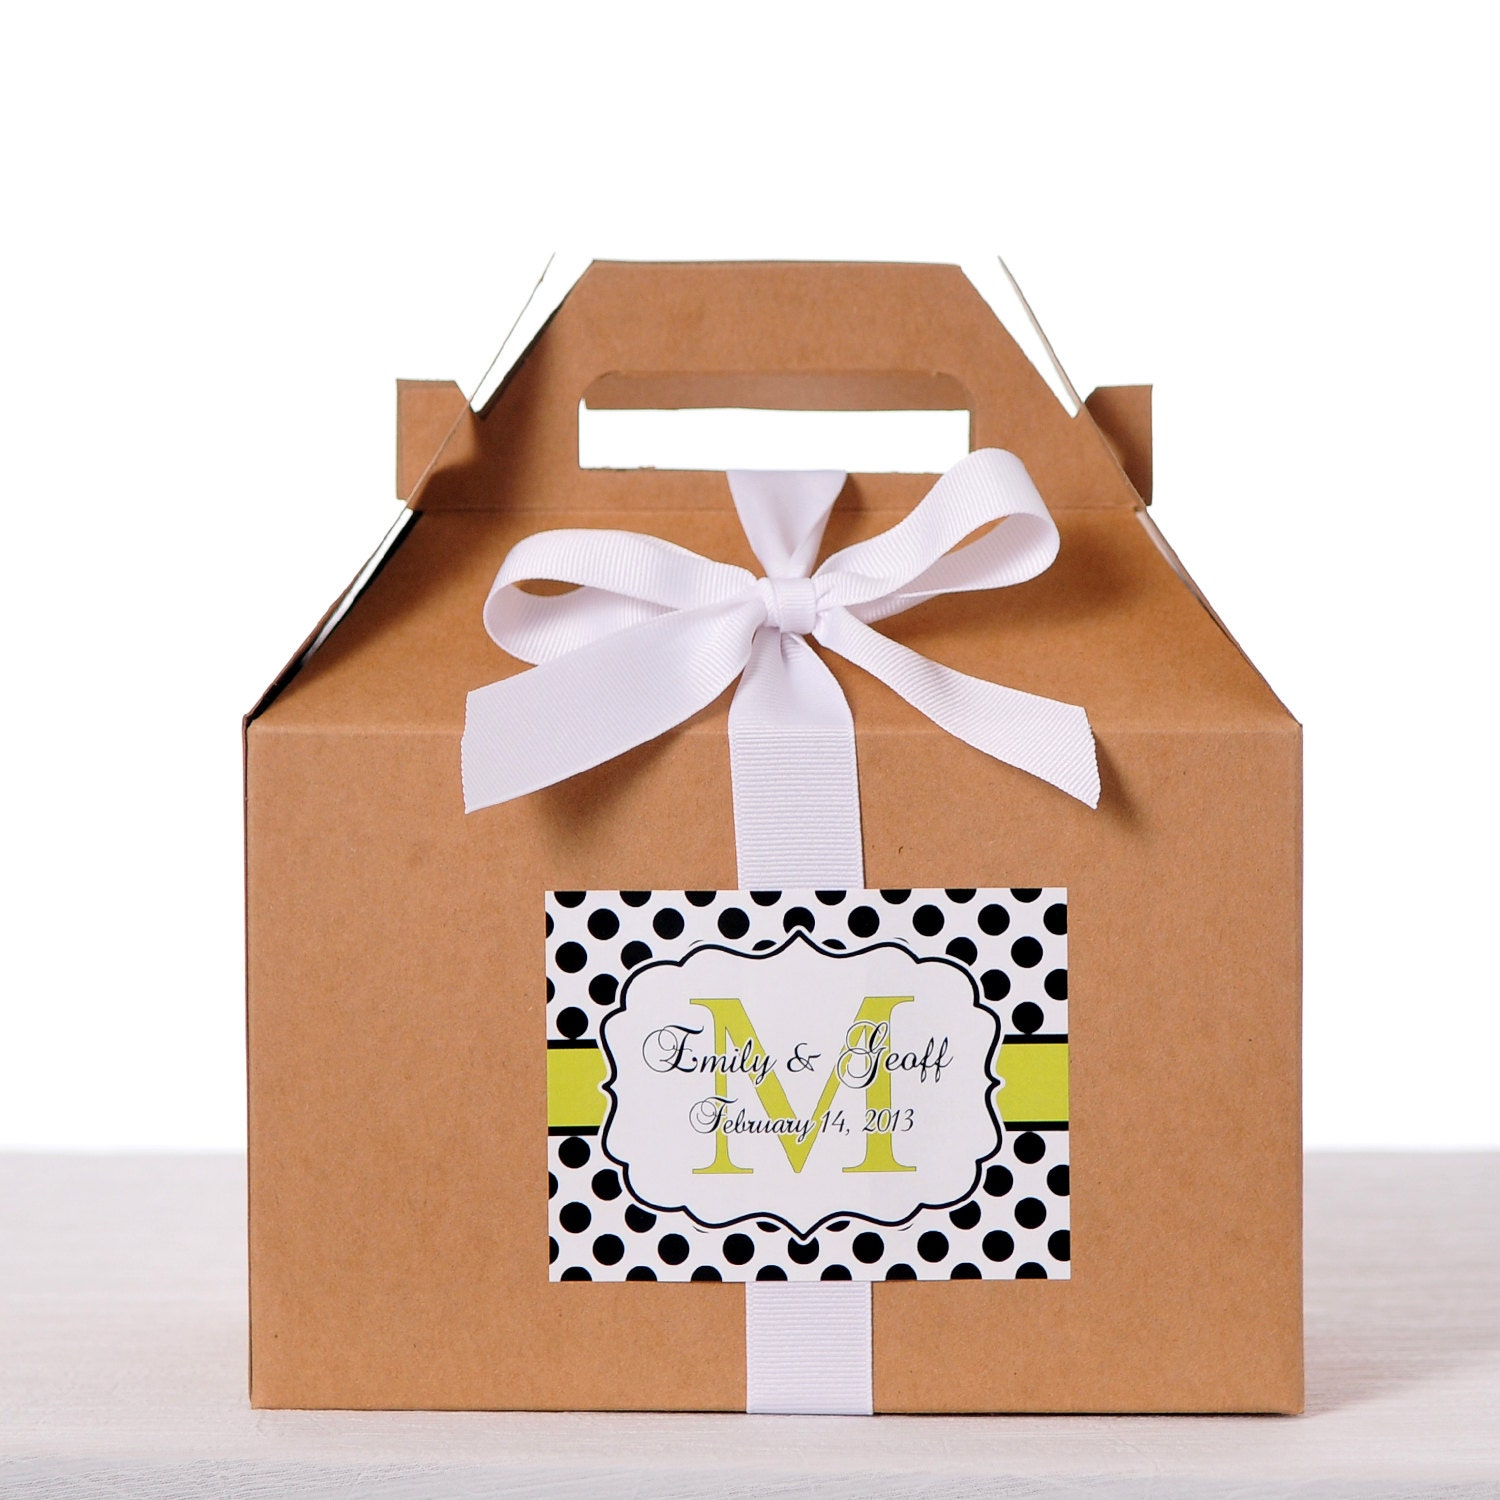 Wedding Gift Box Stickers : 60 4X3 Welcome Bag Labels Wedding Favor Box / Welcome Box